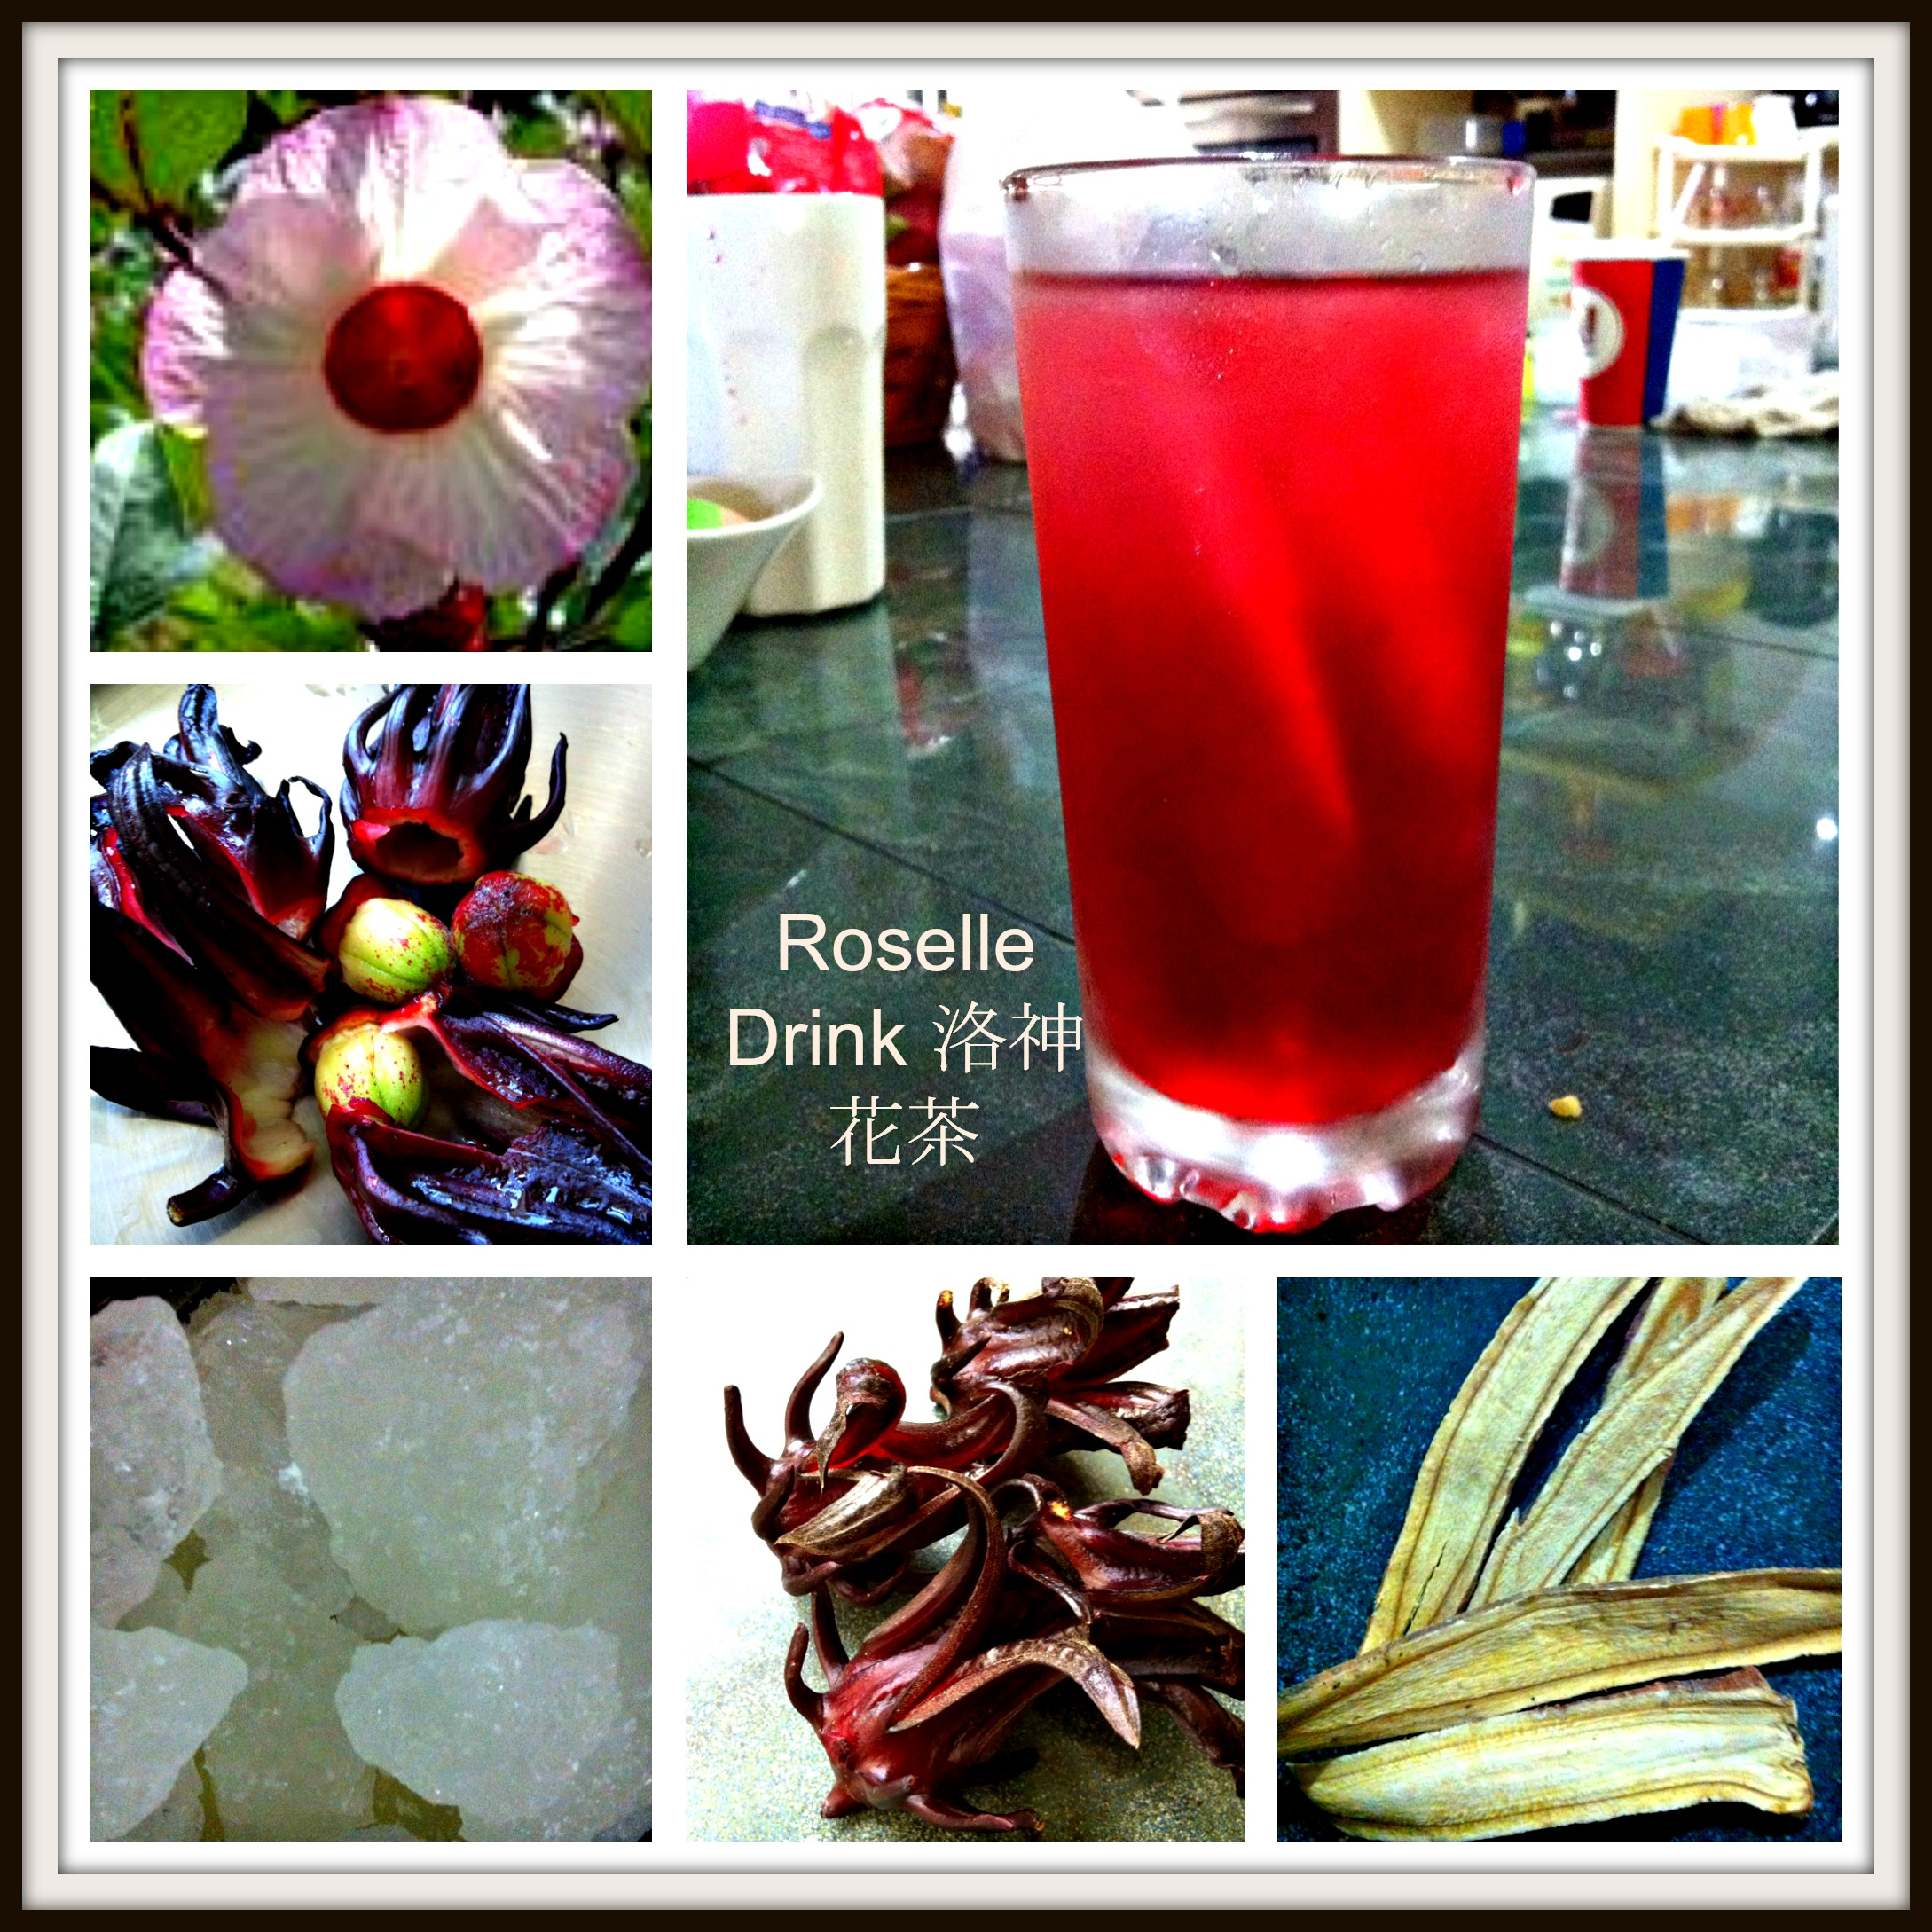 Game to try some wild hibiscus tea guai shu shu img32191 izmirmasajfo